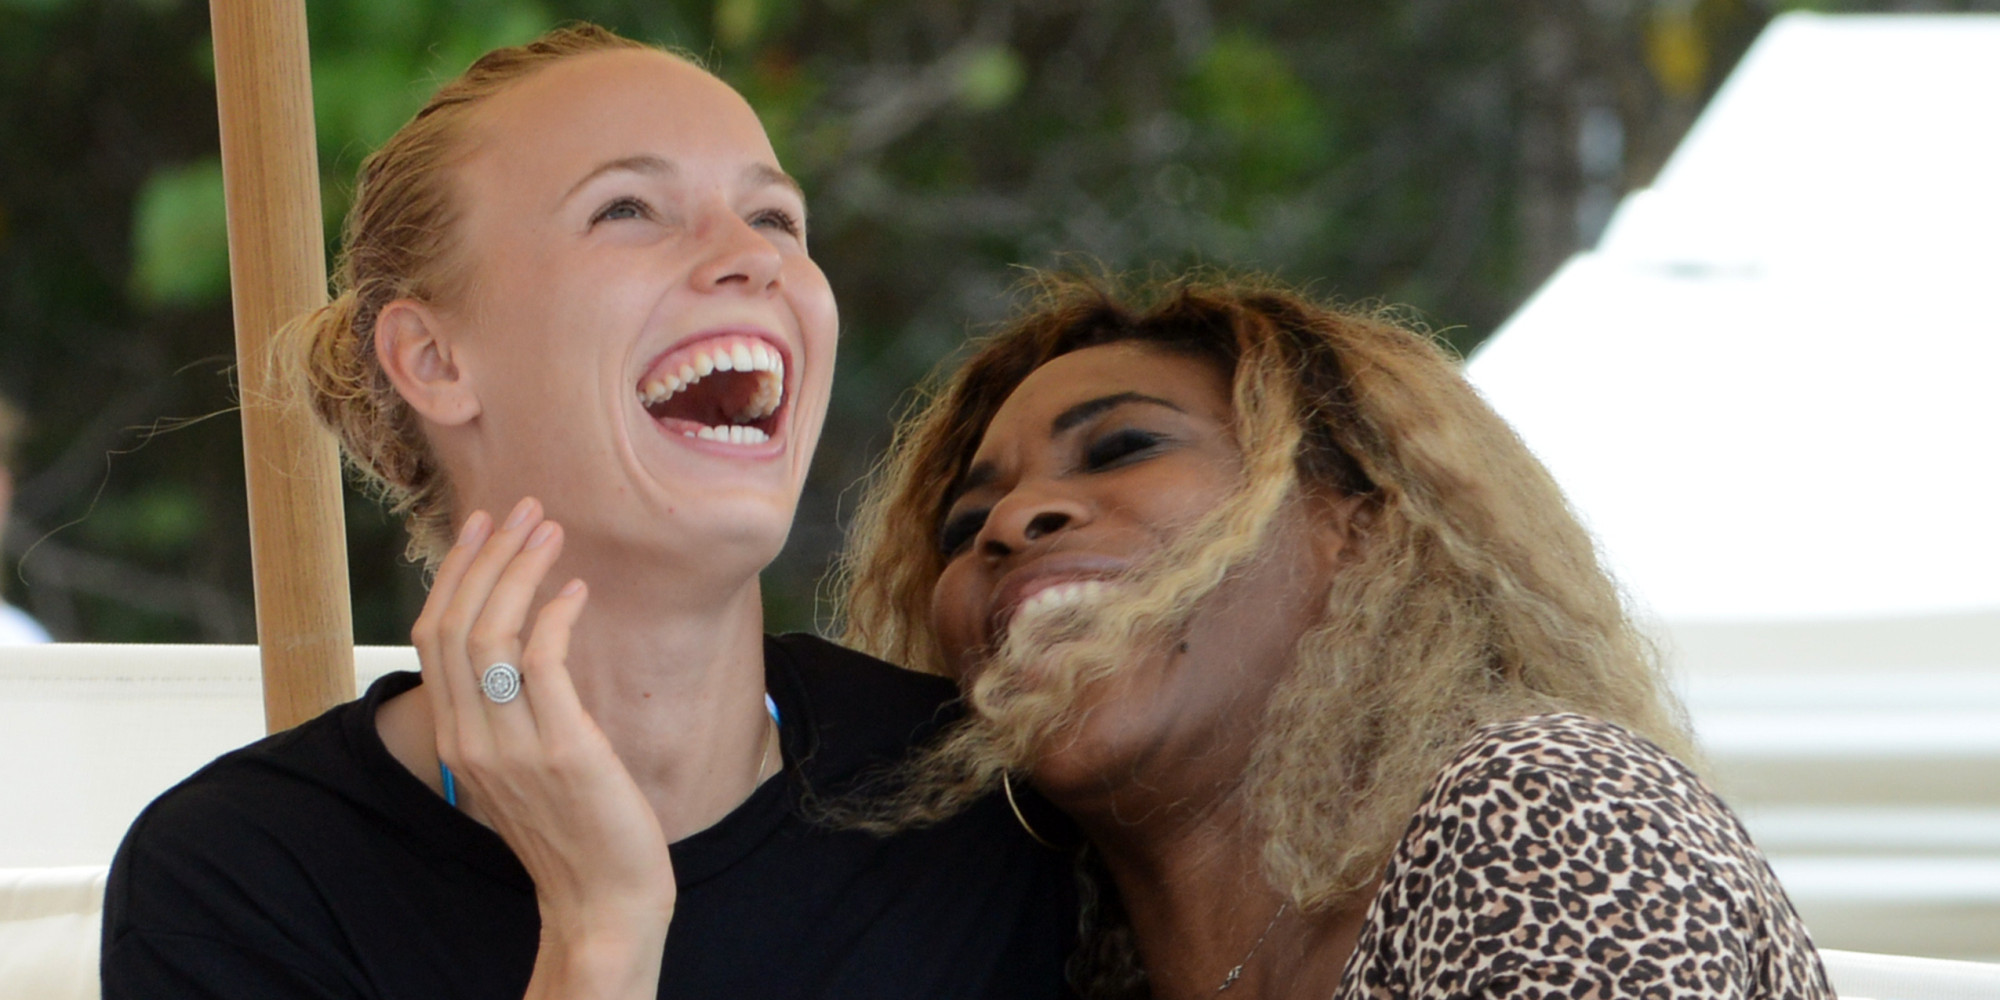 Serena And Caroline Responded To Disappointments In The Best Way ... Together And In Miami